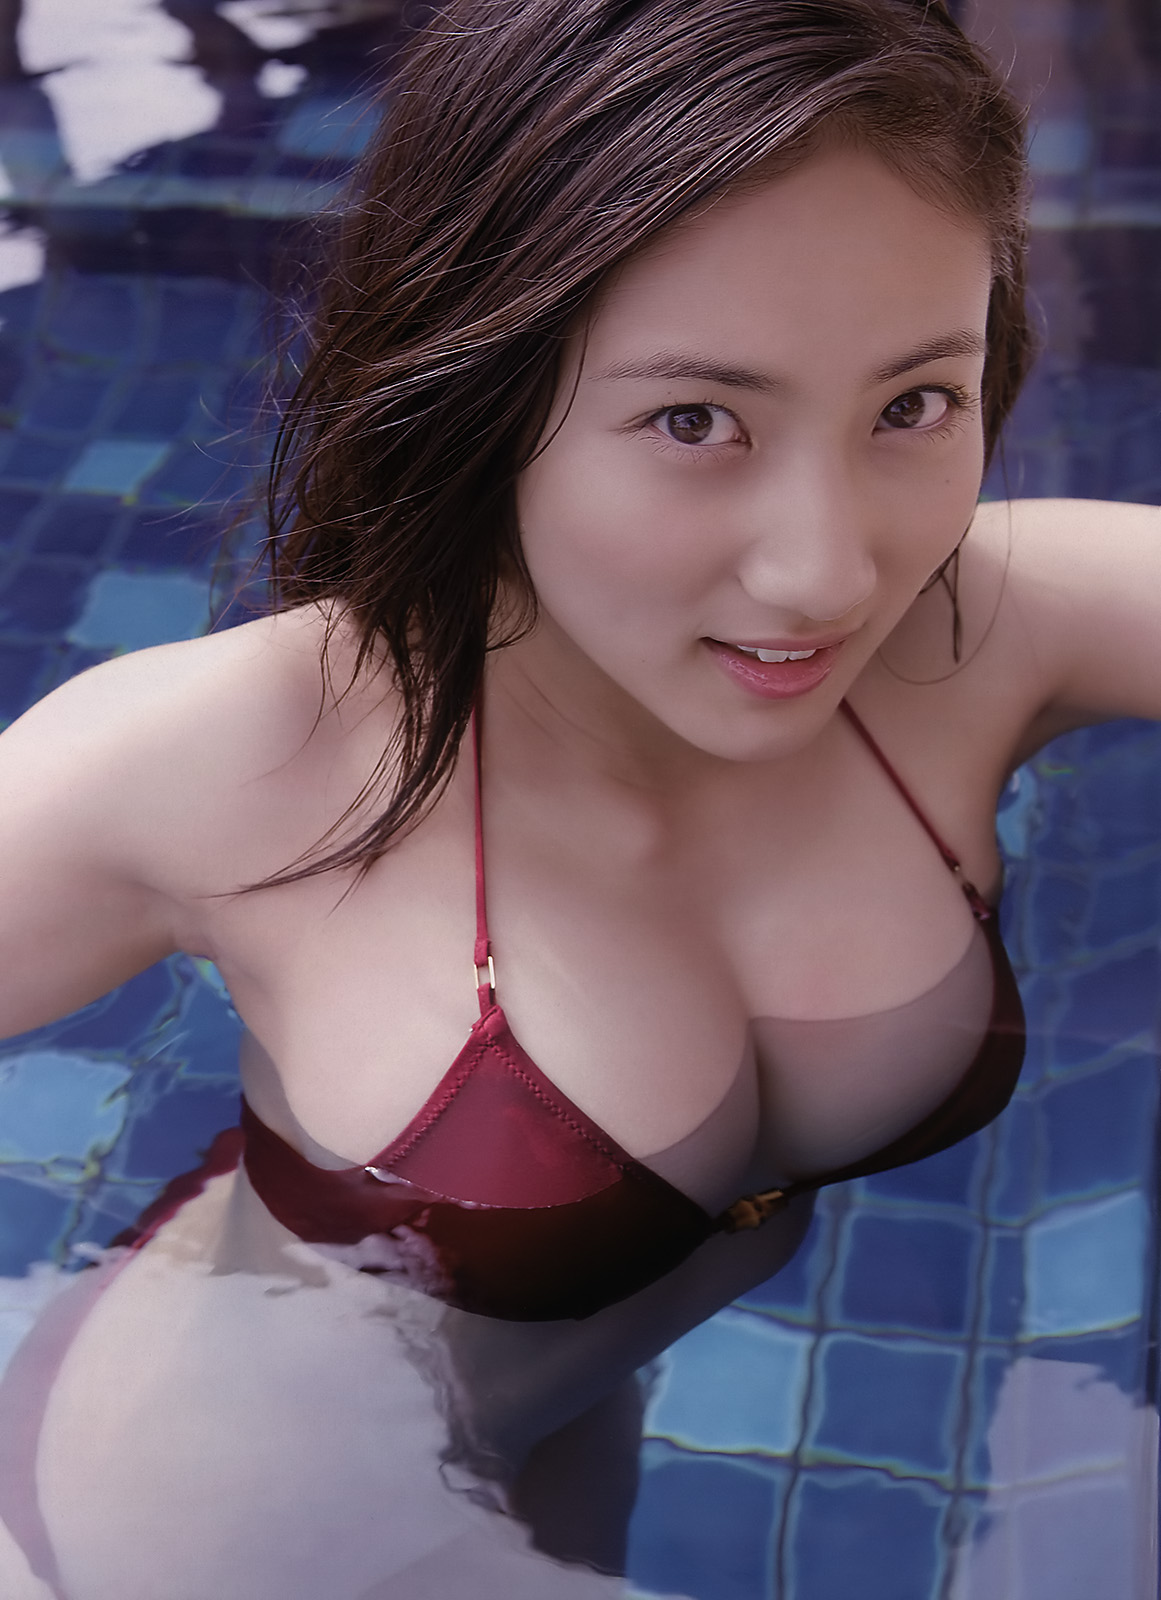 saaya irie hot and sexy bikini photos 01